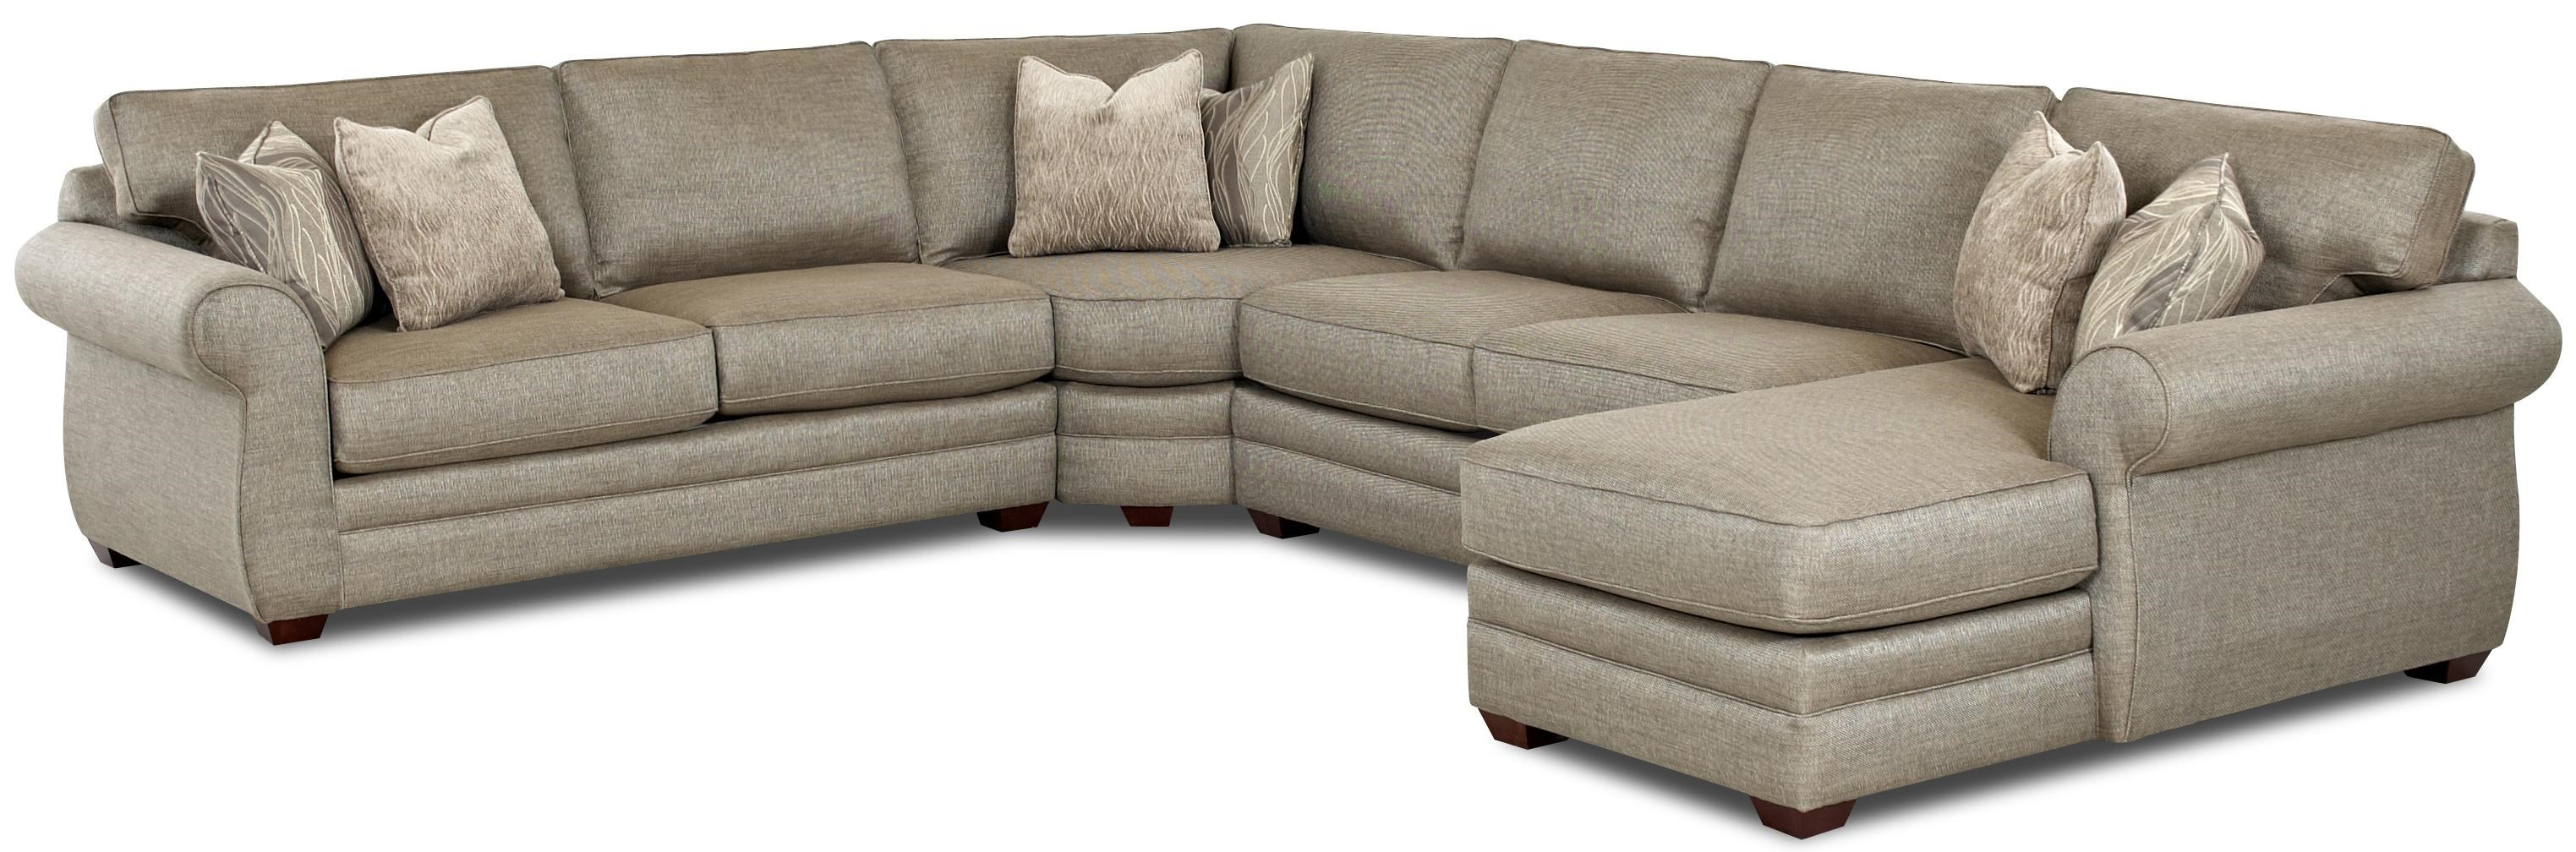 Transitional Sectional Sofa with Right Chaise and Full Sleeper